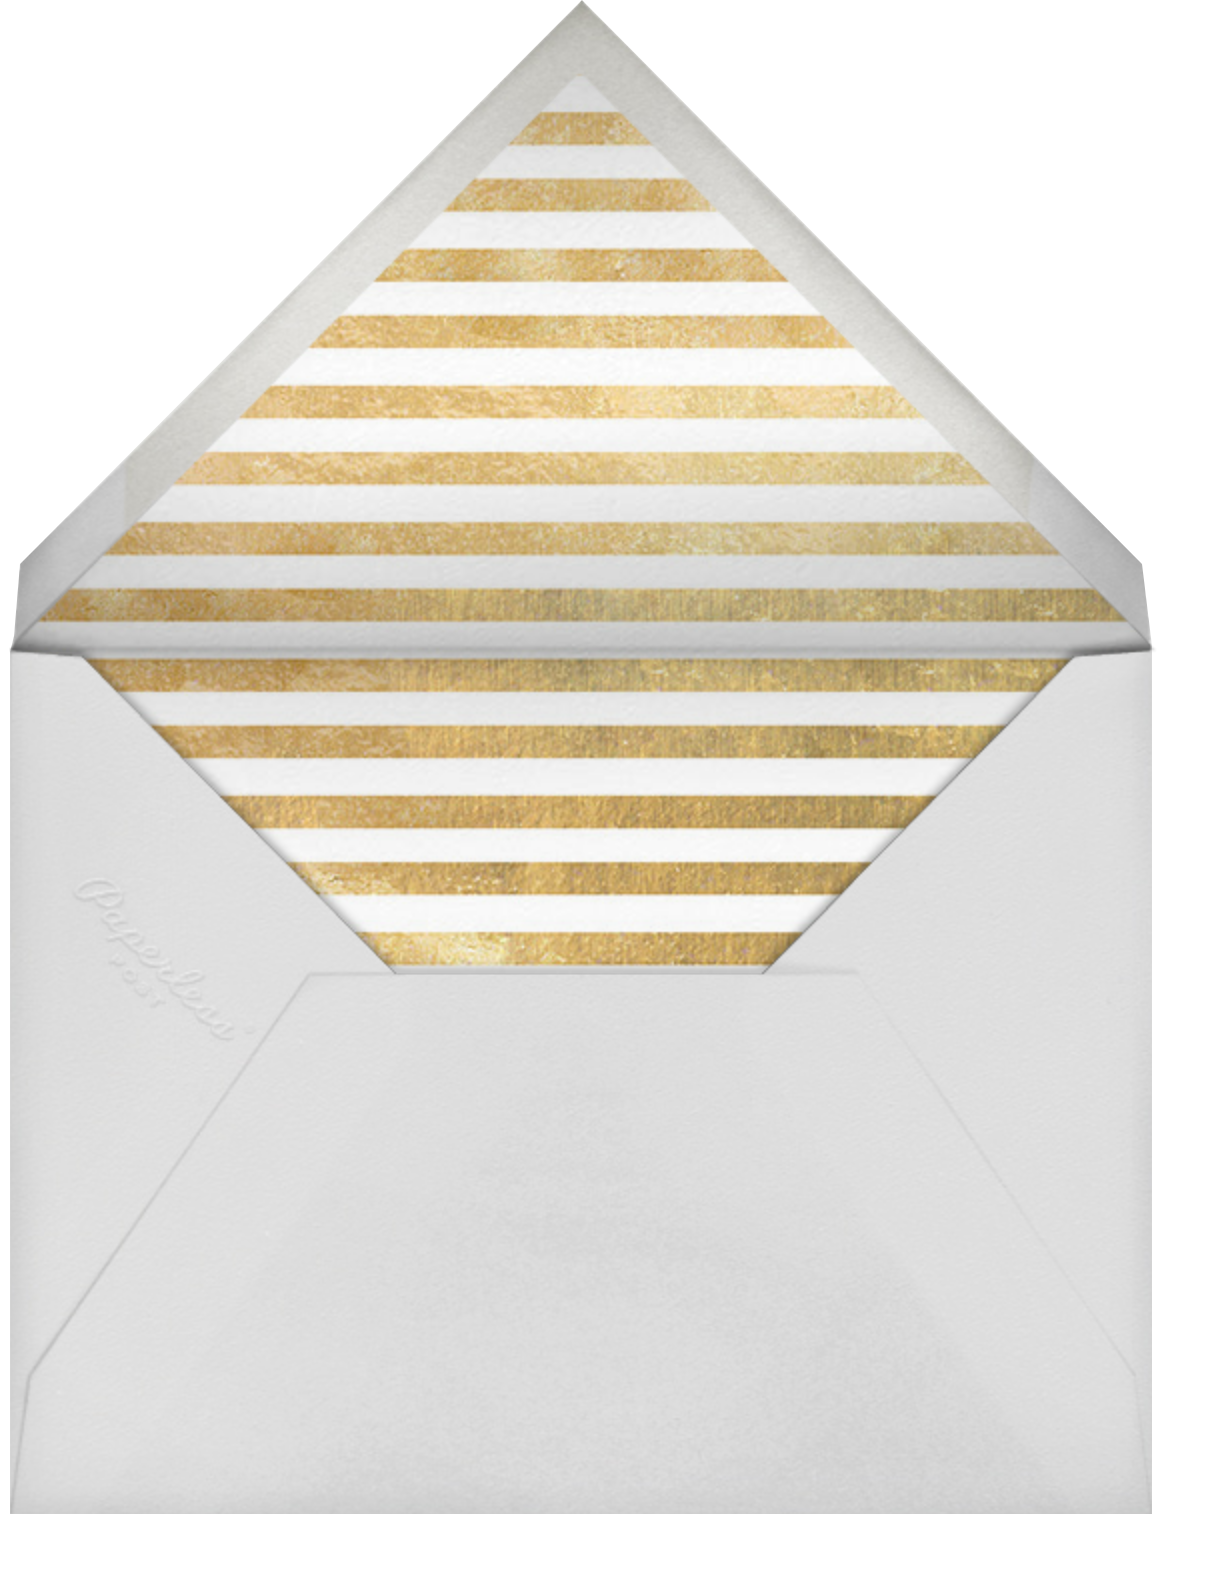 Person of the Year (Photo Announcement) - Gold - Paperless Post - Graduation - envelope back